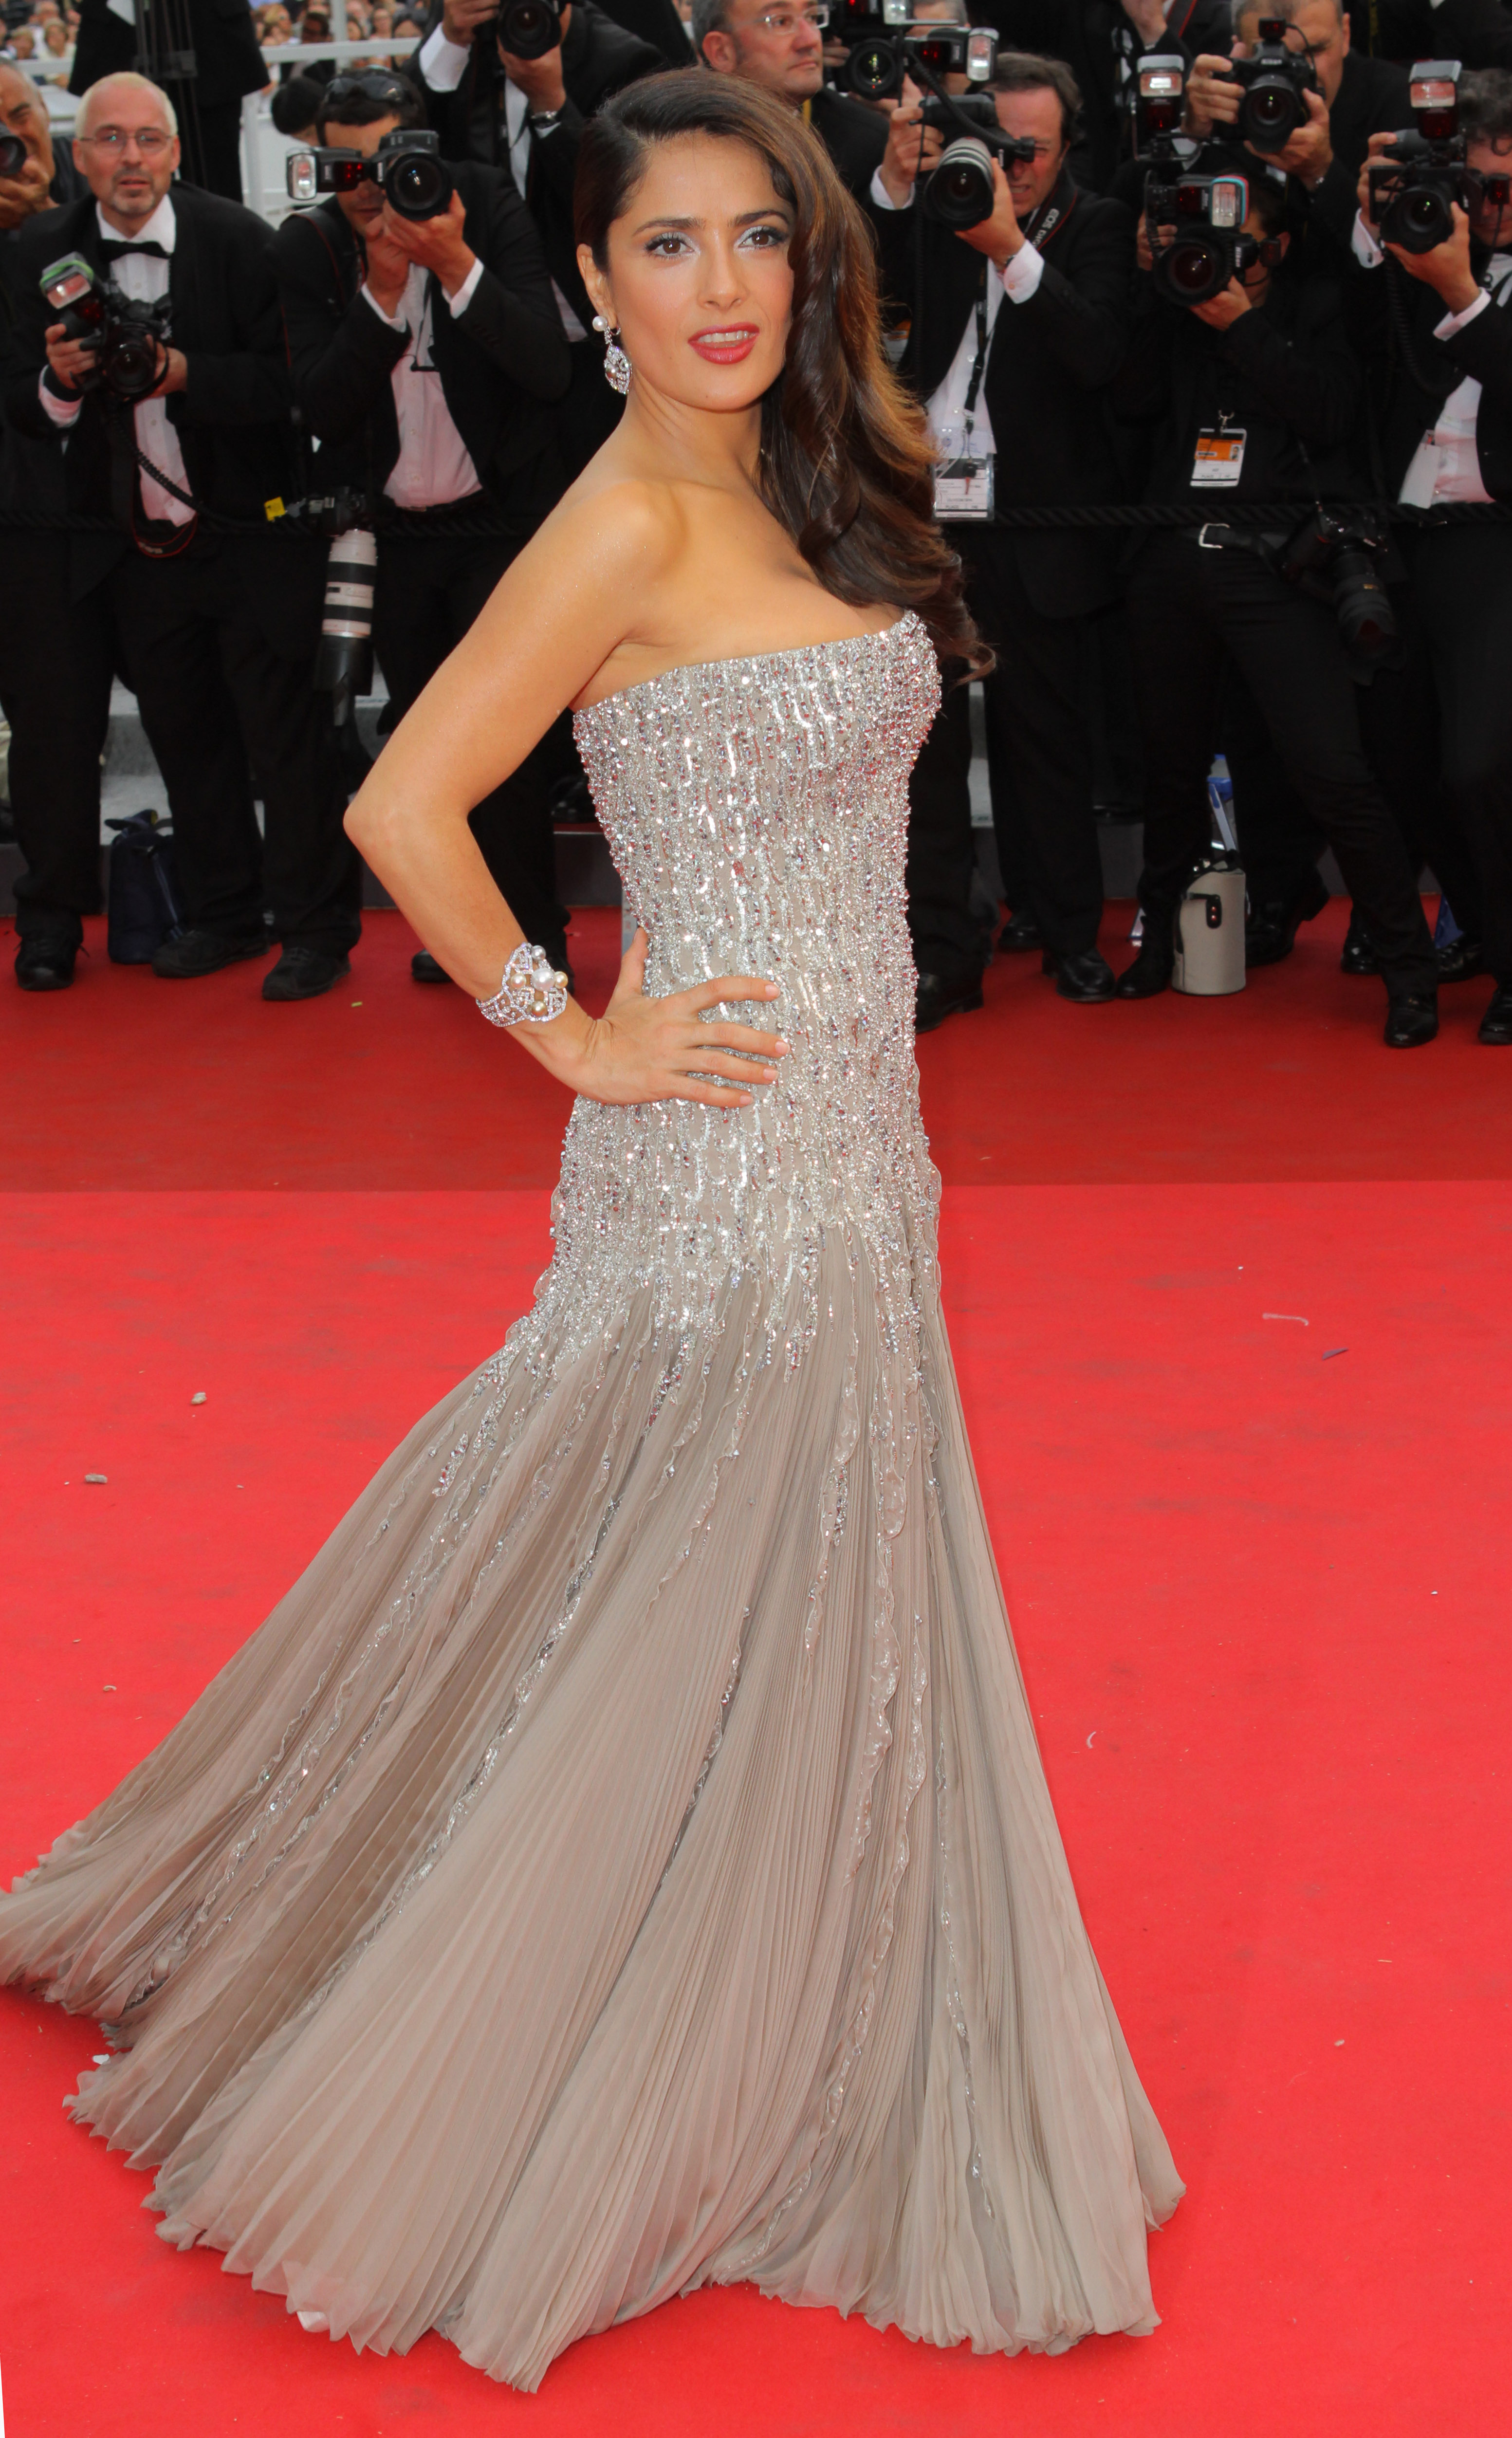 Salma Hayek  on May 11, 2011 in Cannes.